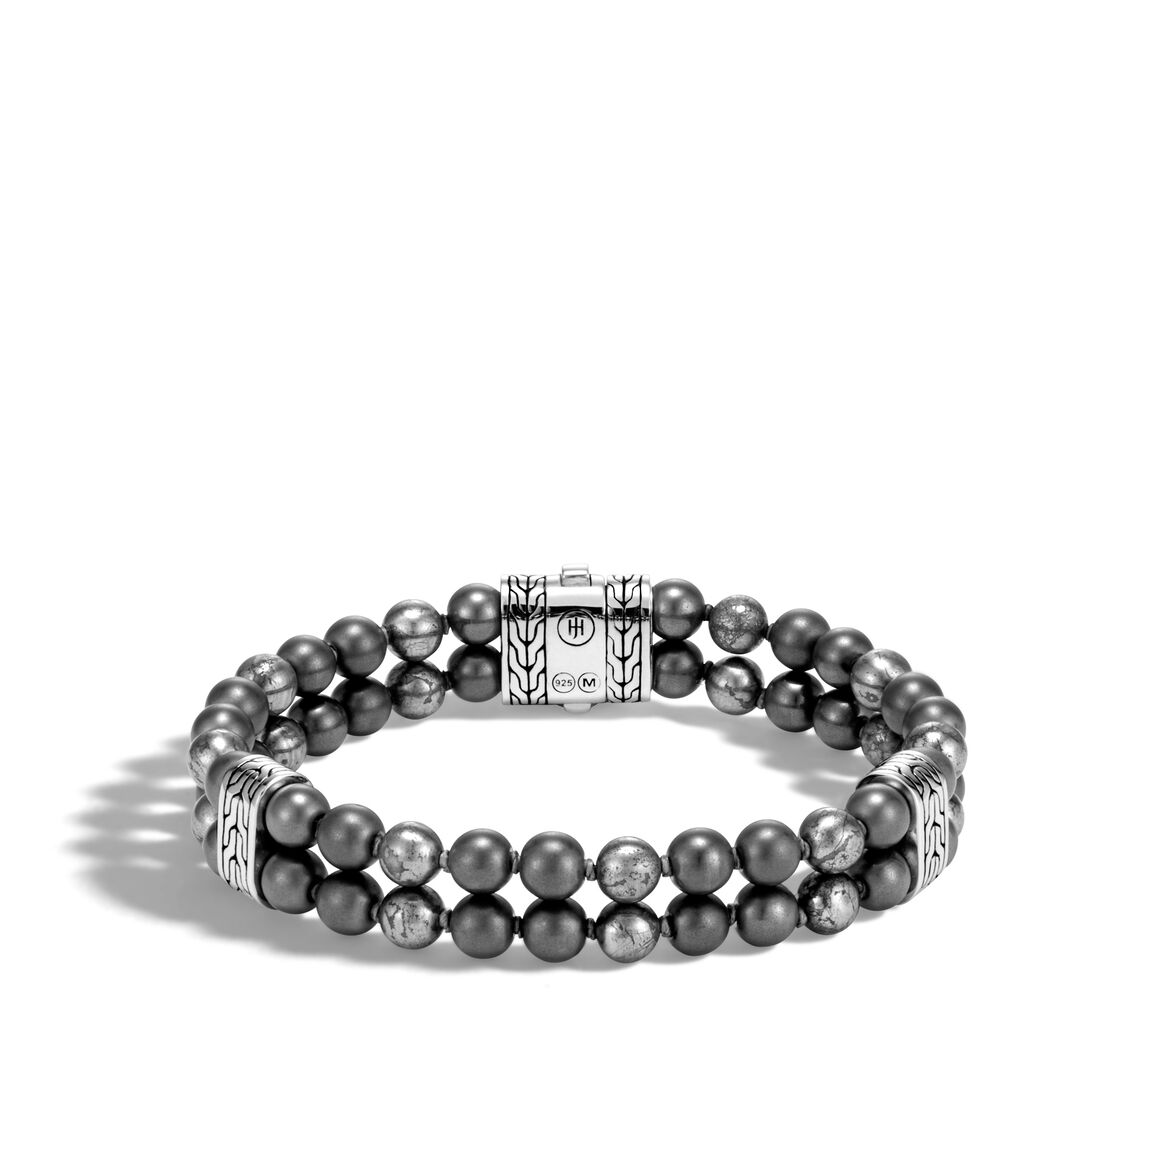 Chain Double Row Bead Bracelet, Silver with 6MM Gems